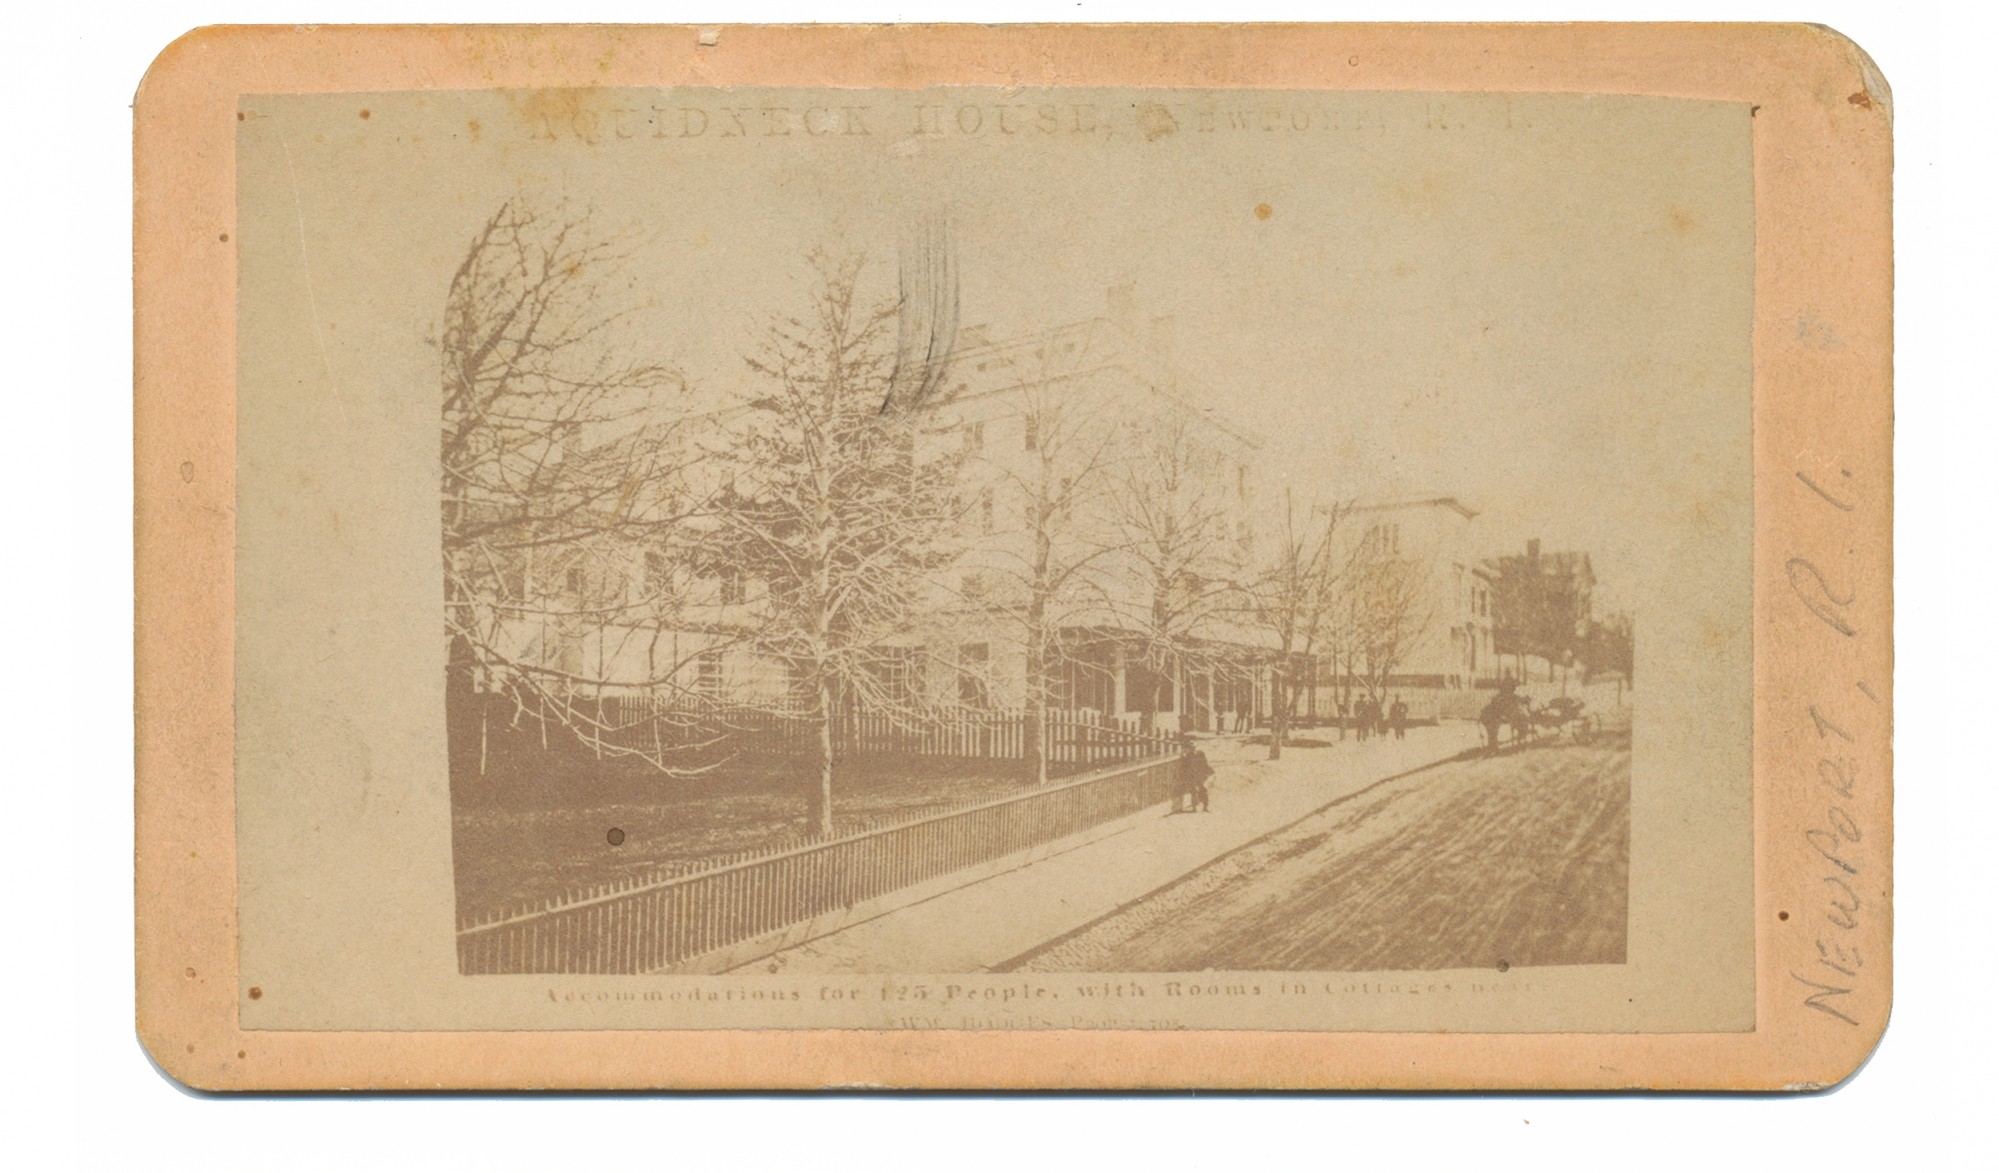 CDV IMAGE OF THE AQUIDNECK HOTEL IN RHODE ISLAND - JOHN WILKES BOOTH